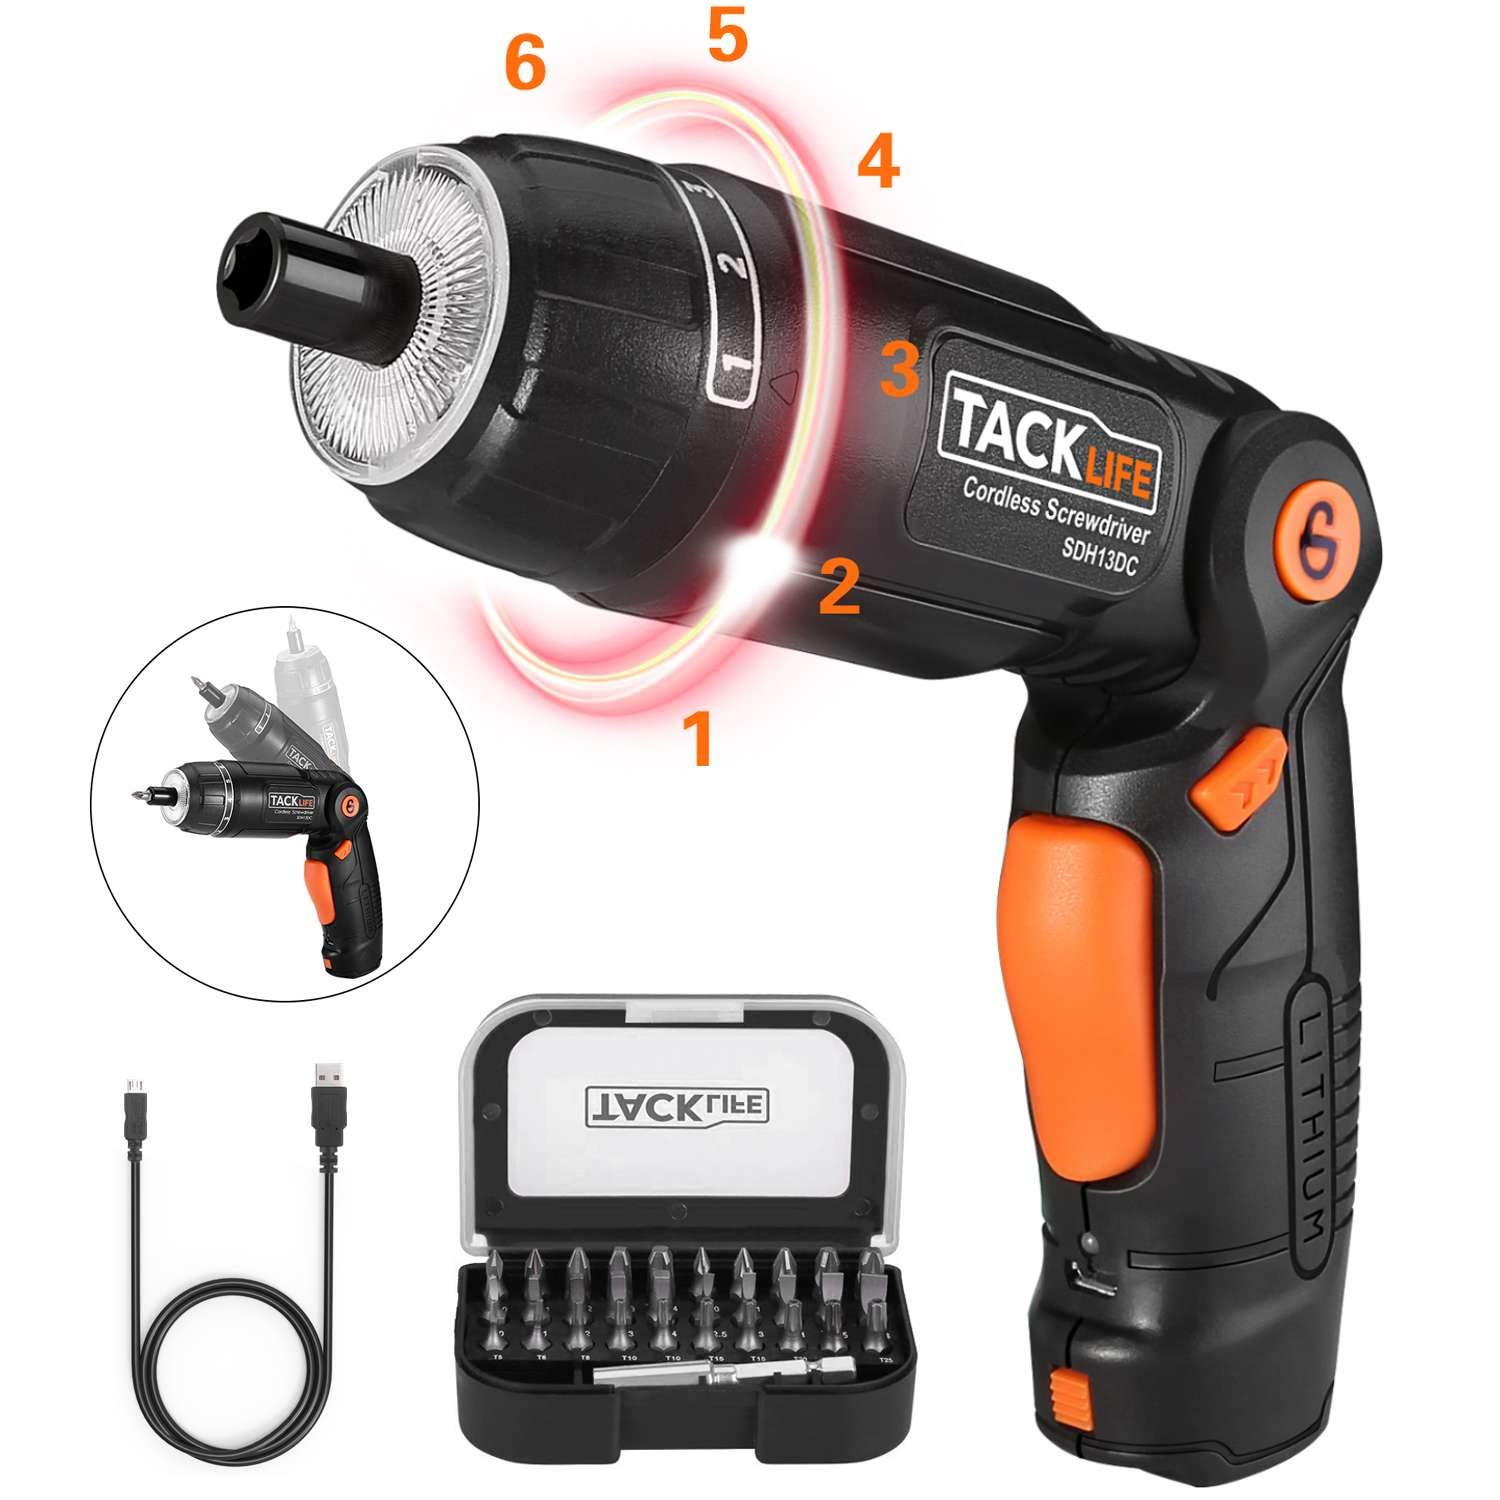 TACKLIFE Electric Screwdriver, 3.6V Screwdriver Drill Set